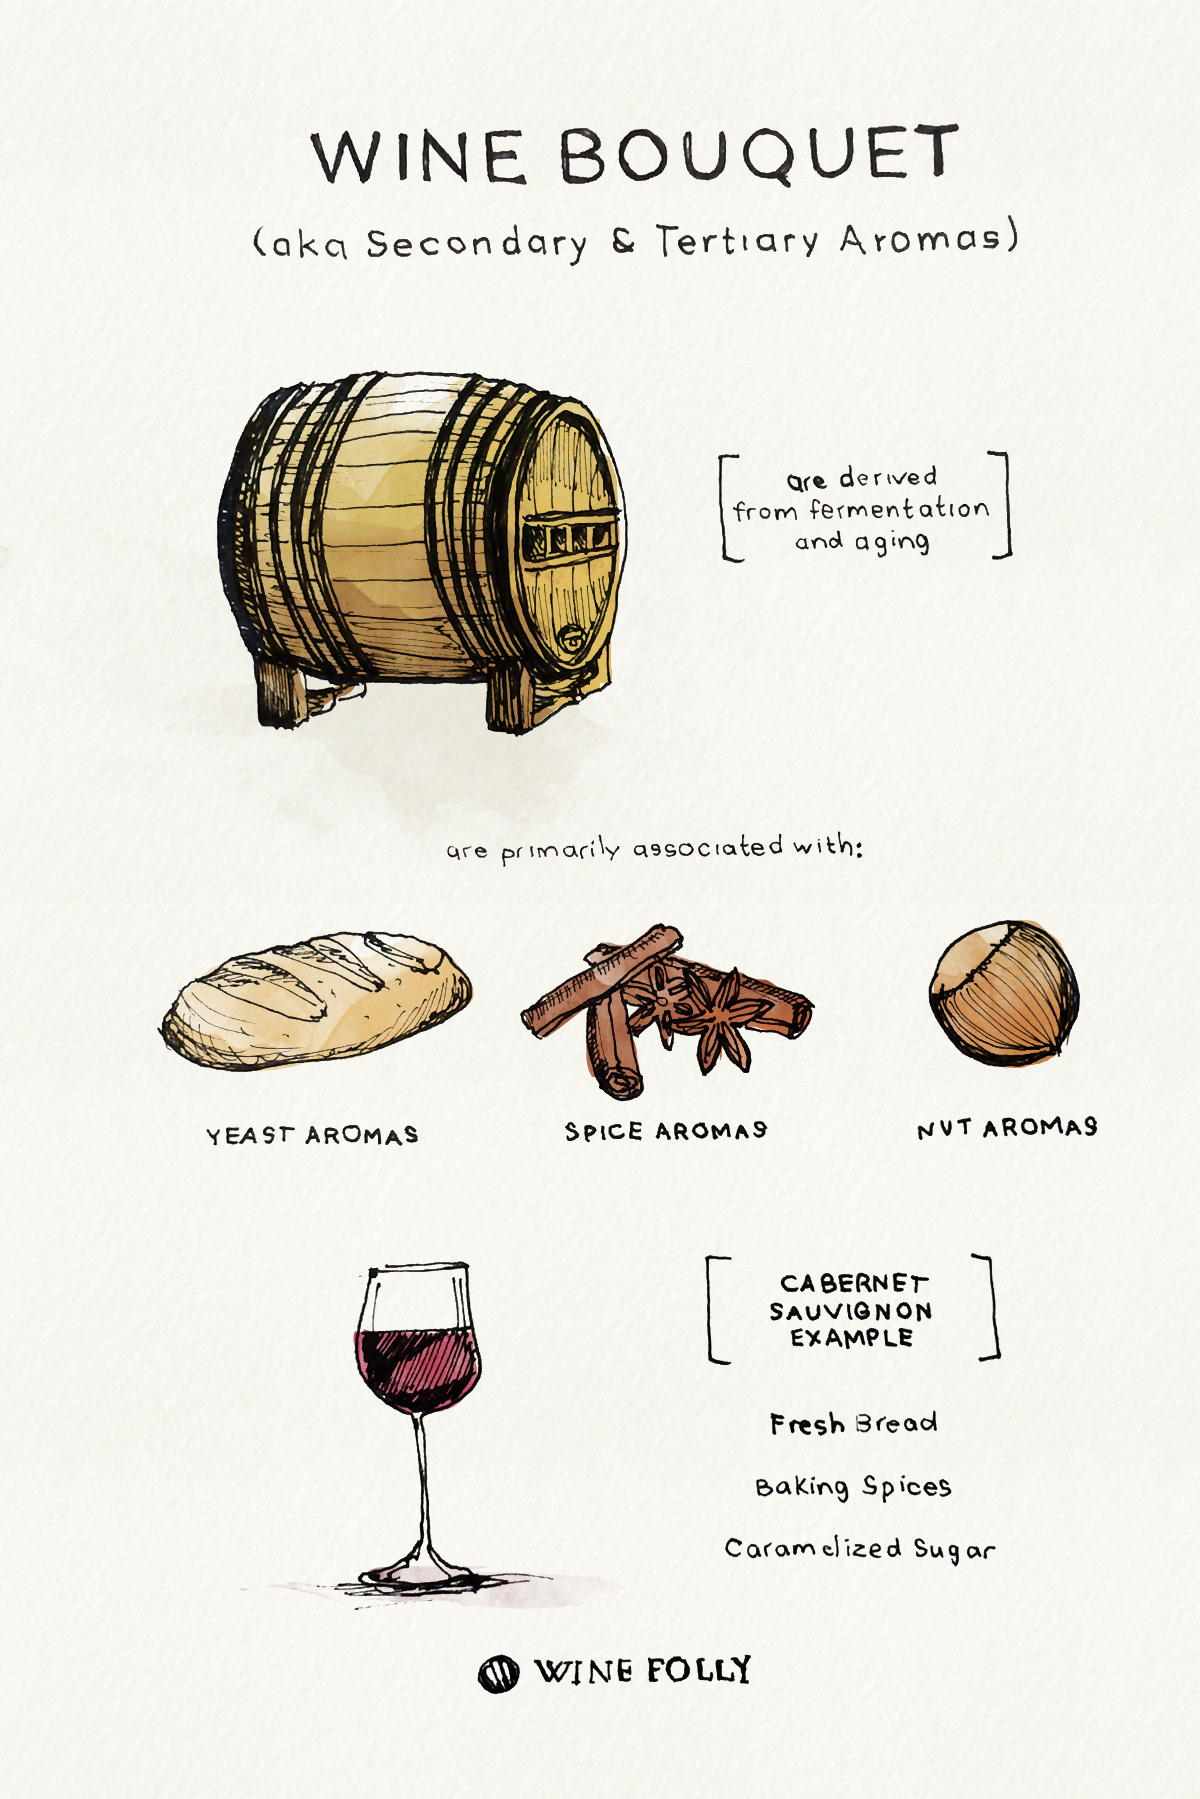 Wine Bouquets - secondary and tertiary aromas - drawing by Wine Folly